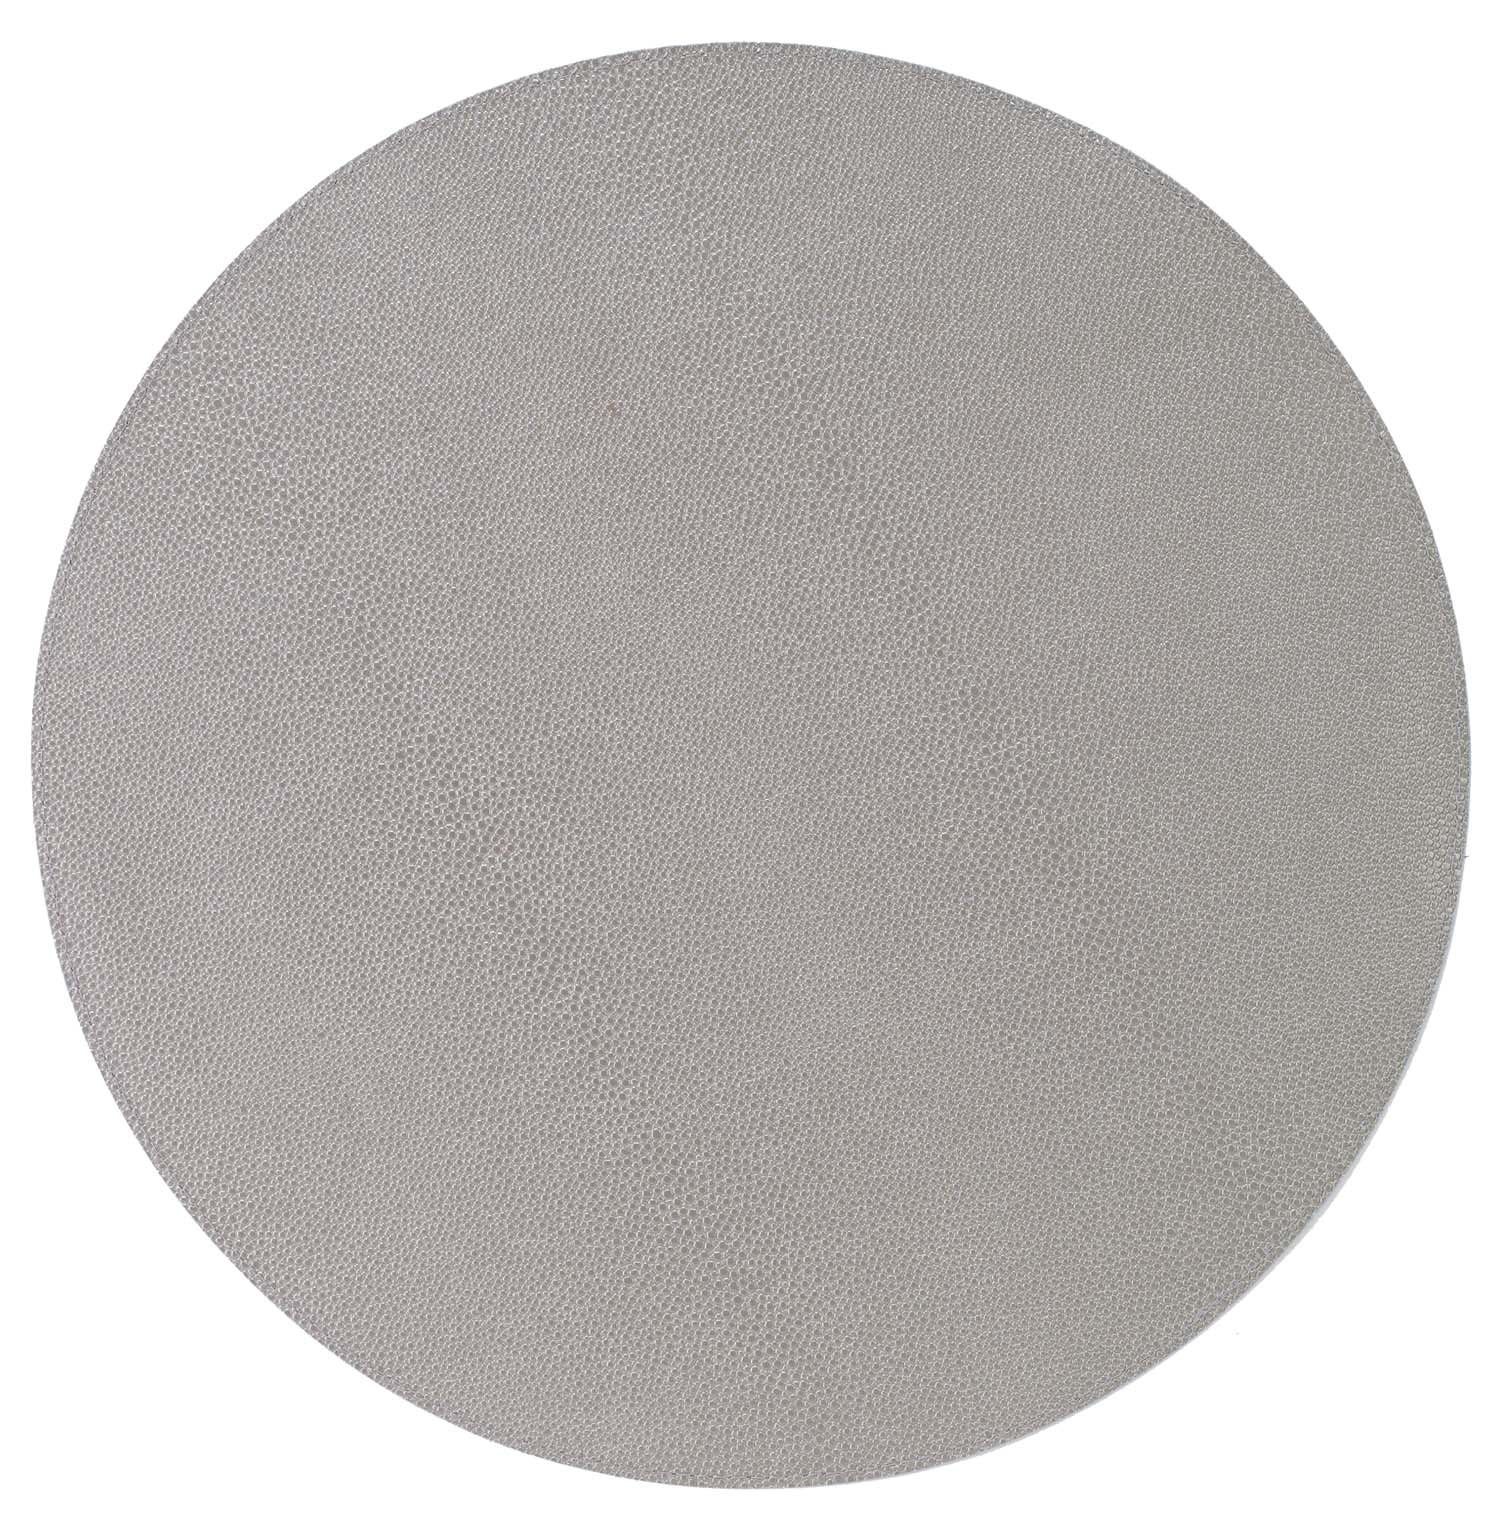 Bodrum Bodrum Skate Round Placemat - Gray - Set of 4 LTM4100P4